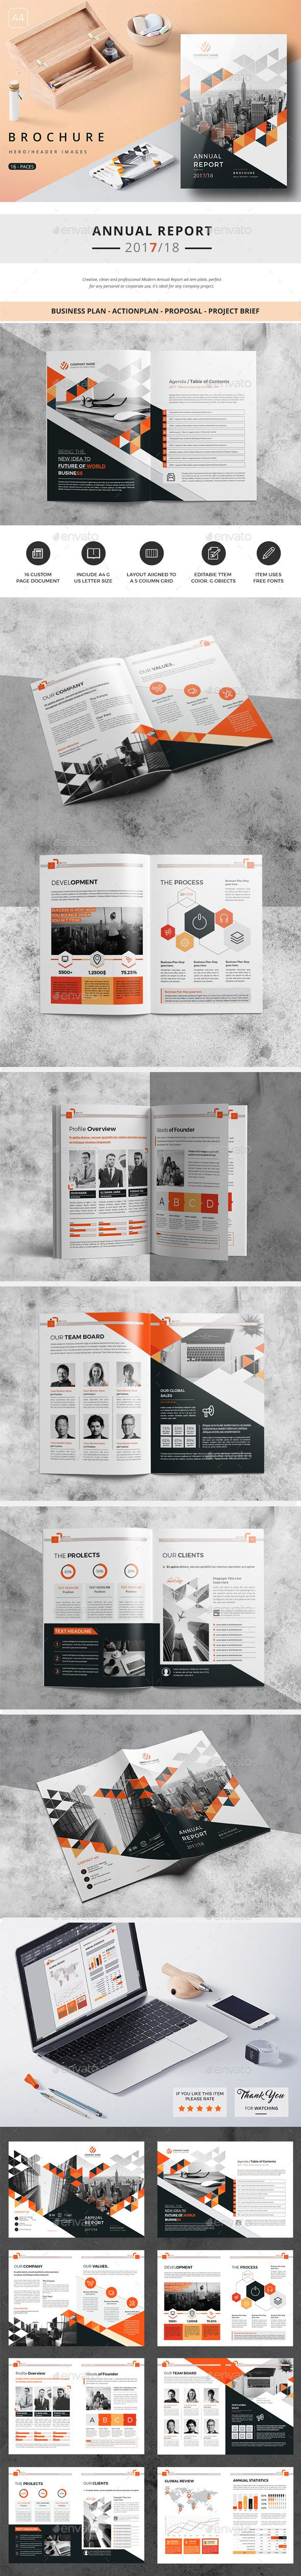 Annual Report - Corporate Brochures Download here: https://graphicriver.net/item/annual-report/20036185?ref=classicdesignp